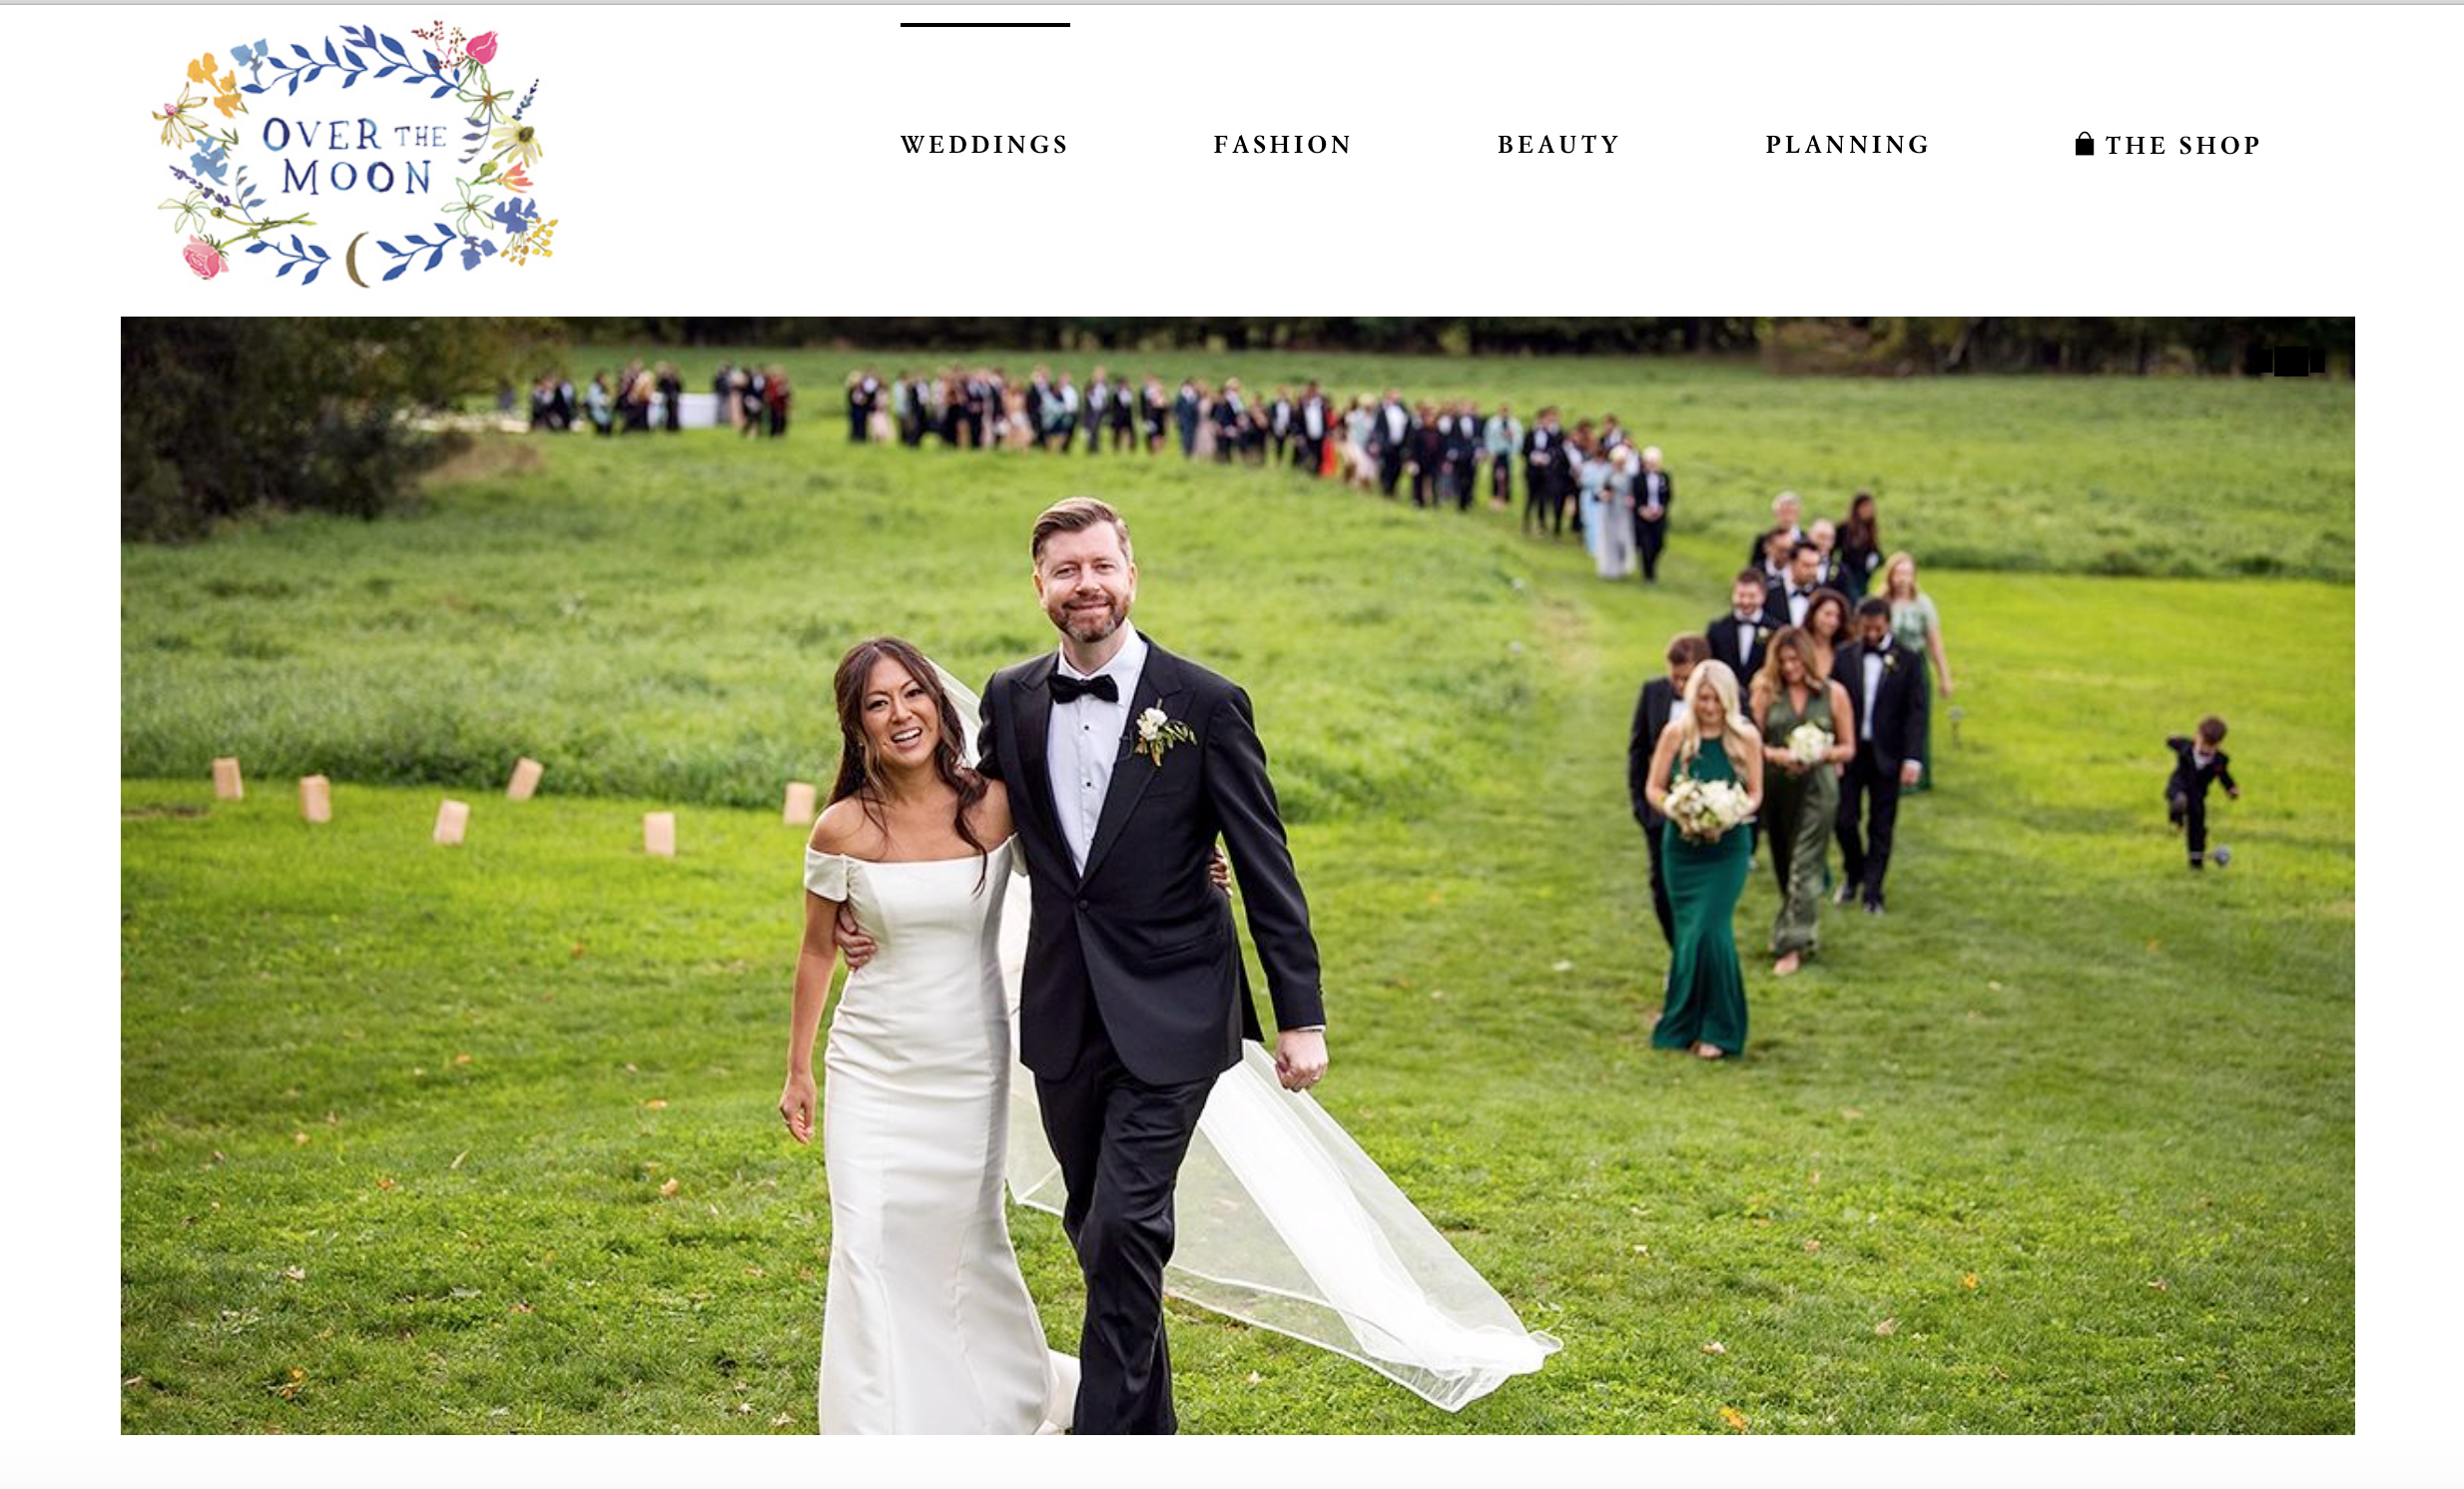 Carol & Nick - We smiled for 24 hours straight photographing these two and their family and friends! Read about their gorgeous barn wedding in the Catskills at Over the Moon.